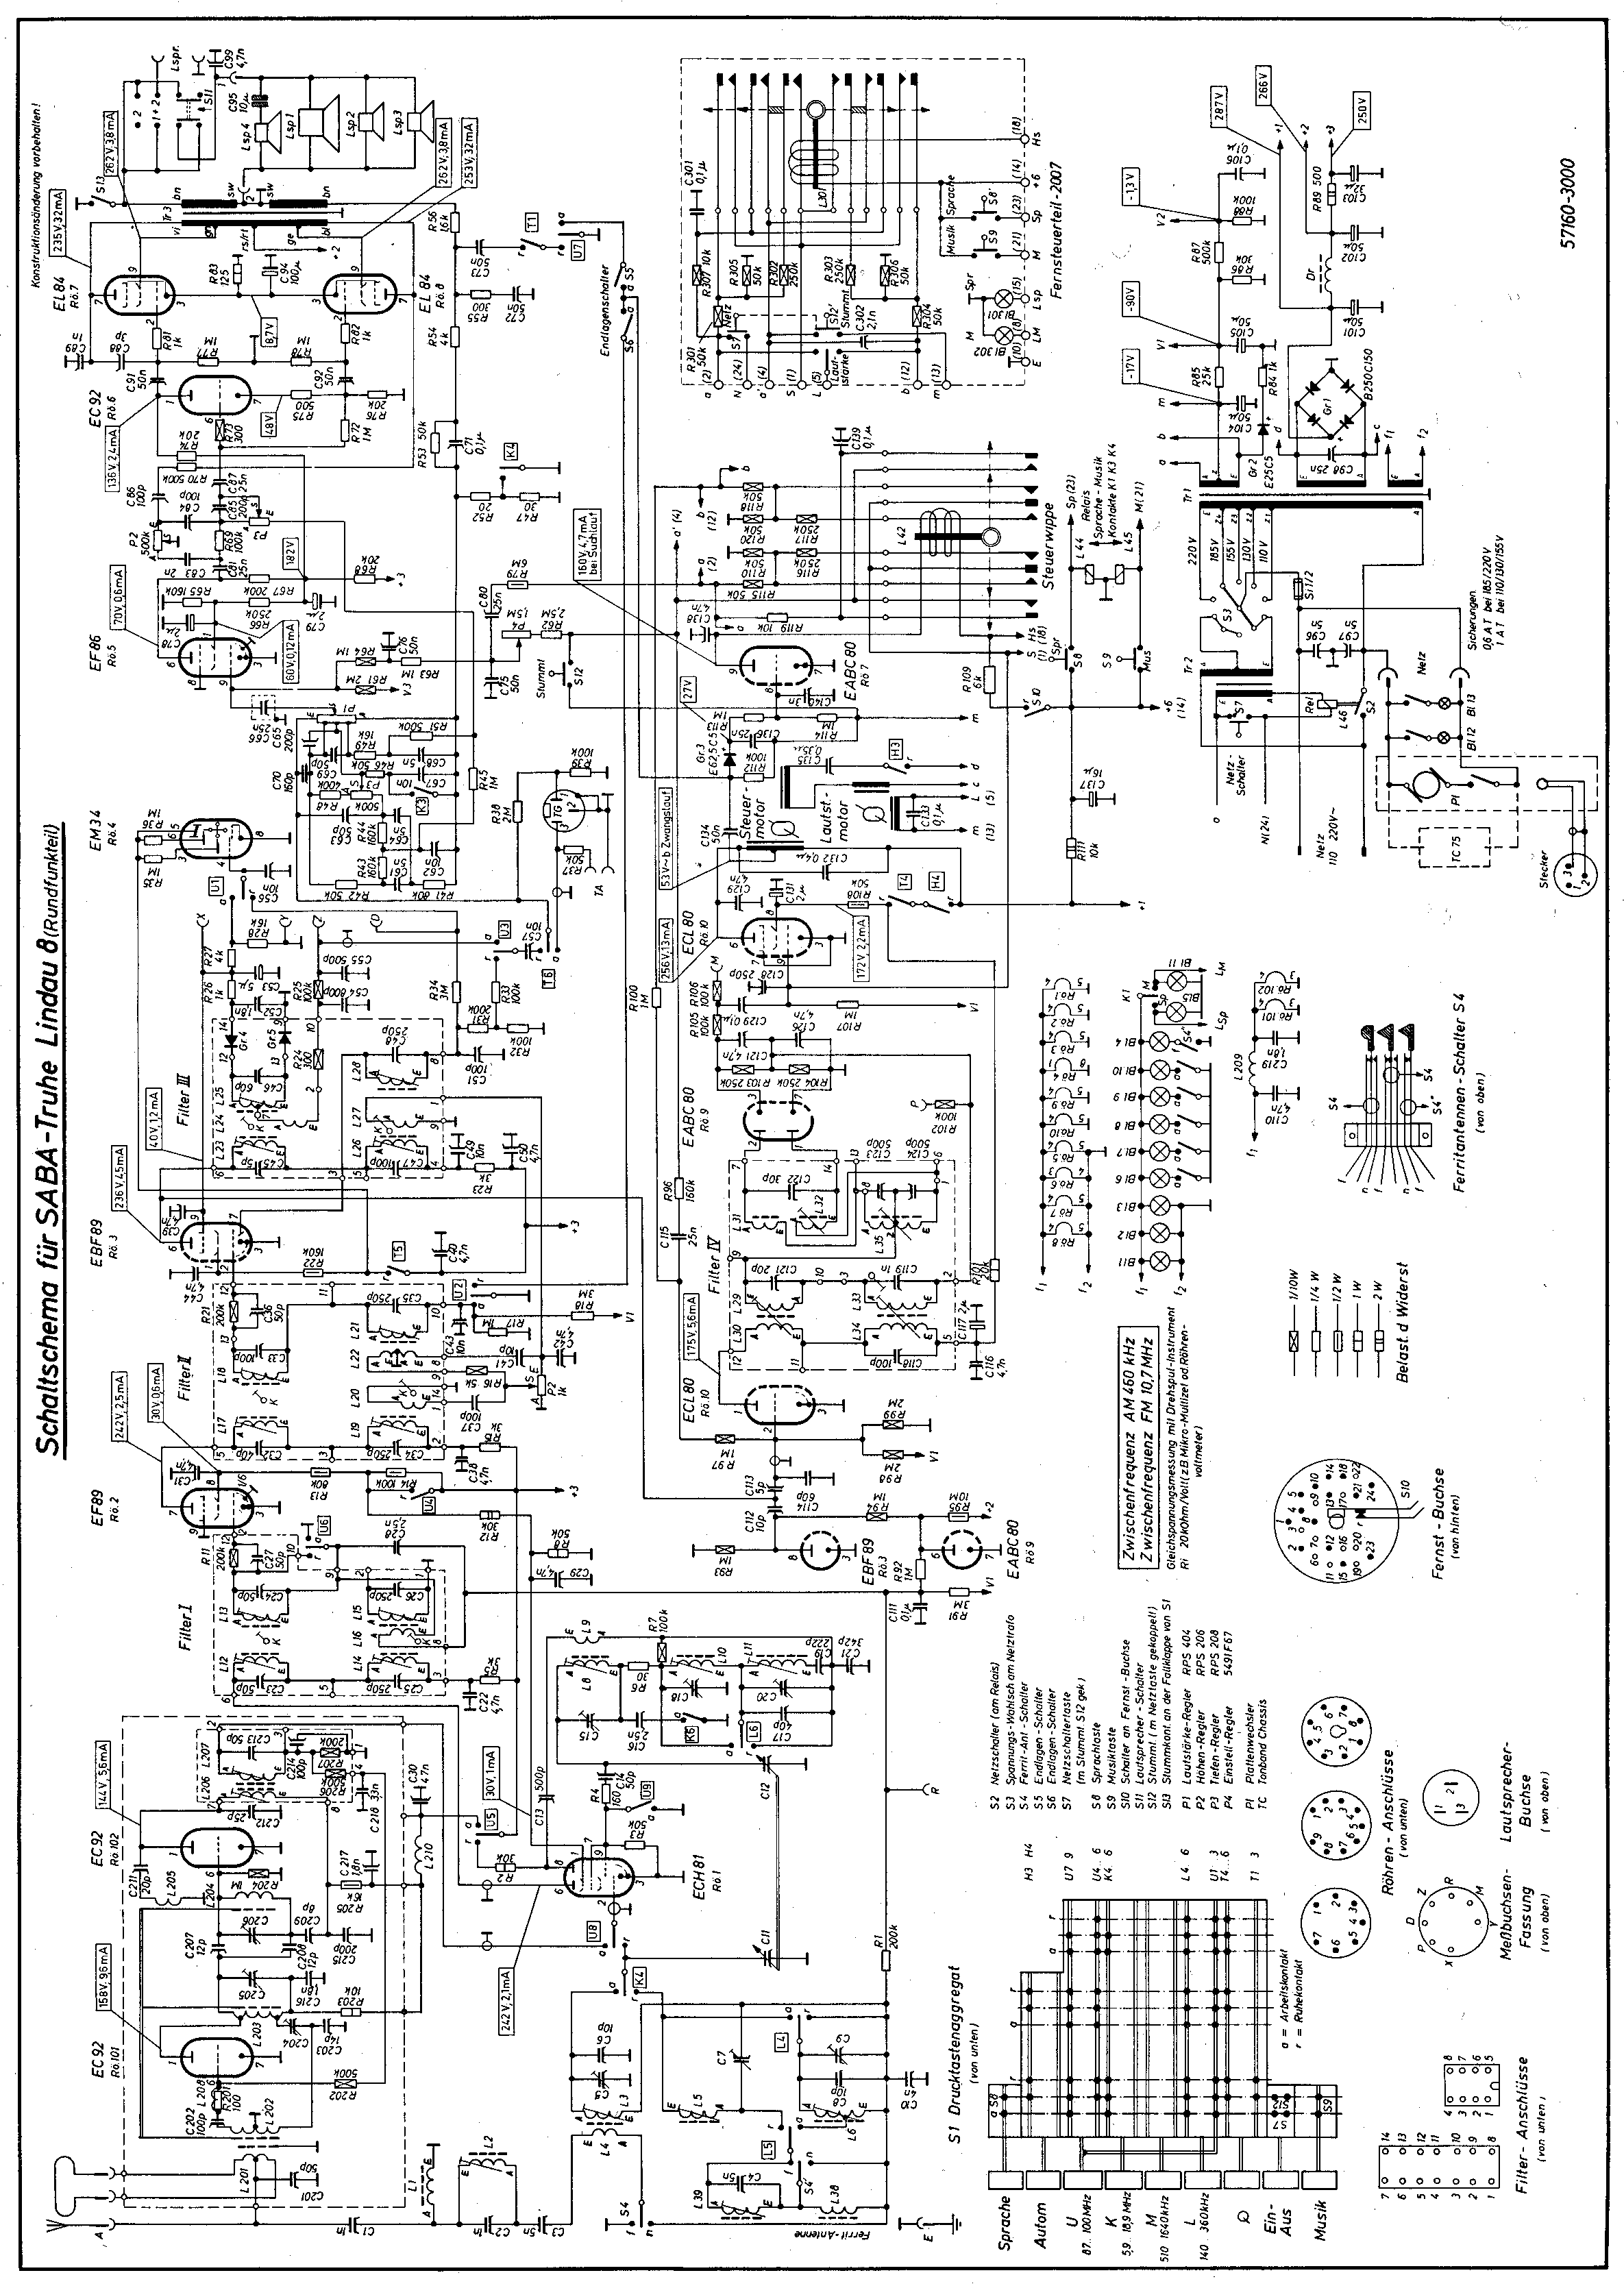 Schematics Perfect With Irfanview 398 399 Or 400 Click On The Schematic To Open A Larger Version In New Window It Big Size And Example As Pdf Print Out Enlarge Up For Detail View Is Crystal Clear 12 Tubes